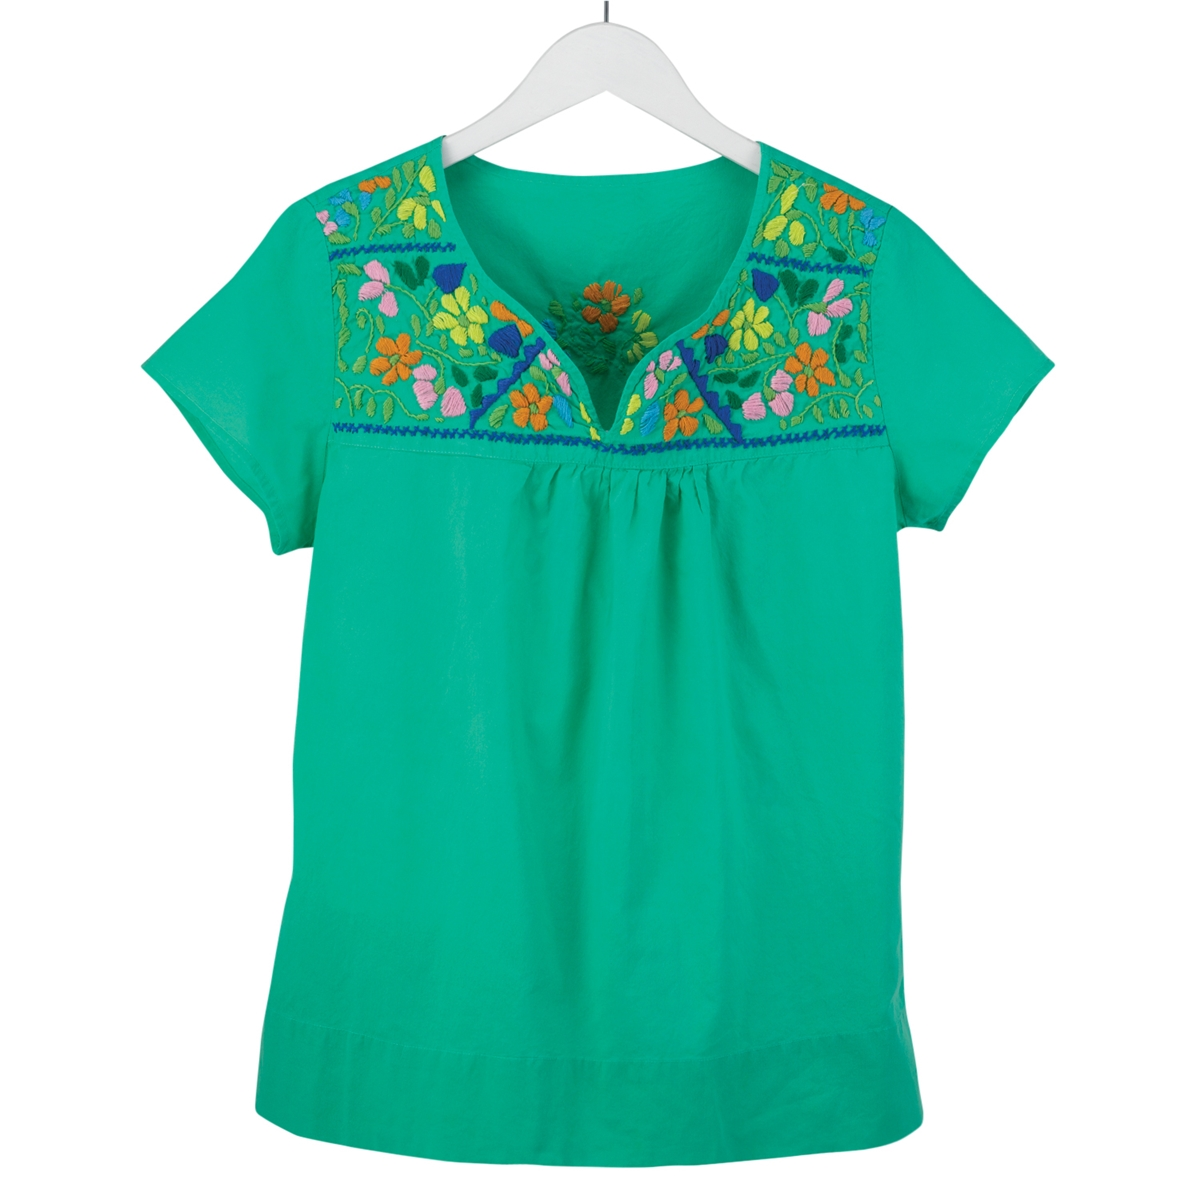 Embroidered Flower Neckline Green Tee